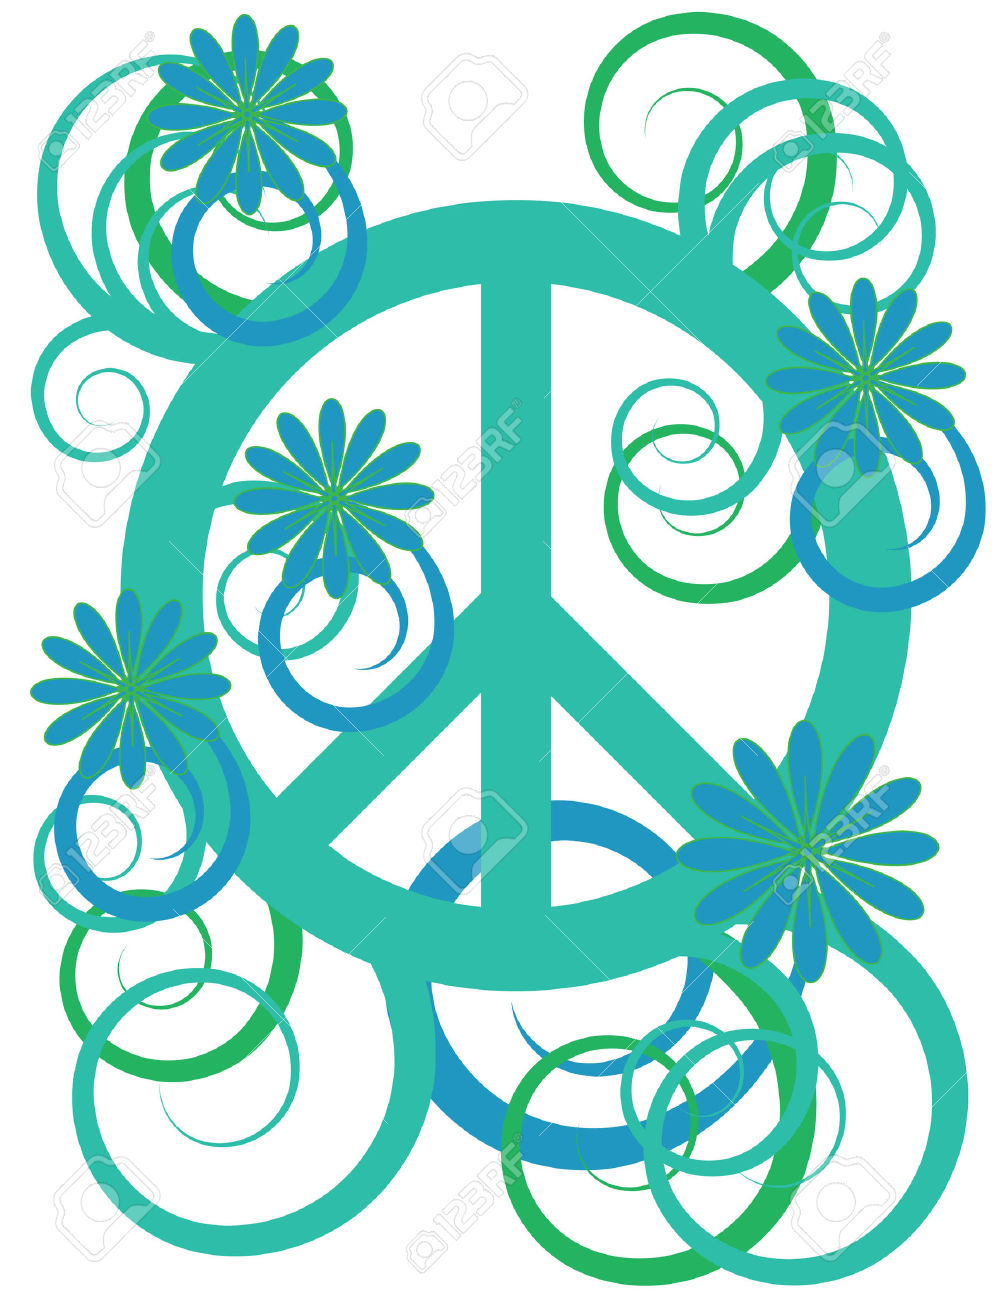 Flower Power Peace Sign Royalty Free Cliparts, Vectors, And Stock.